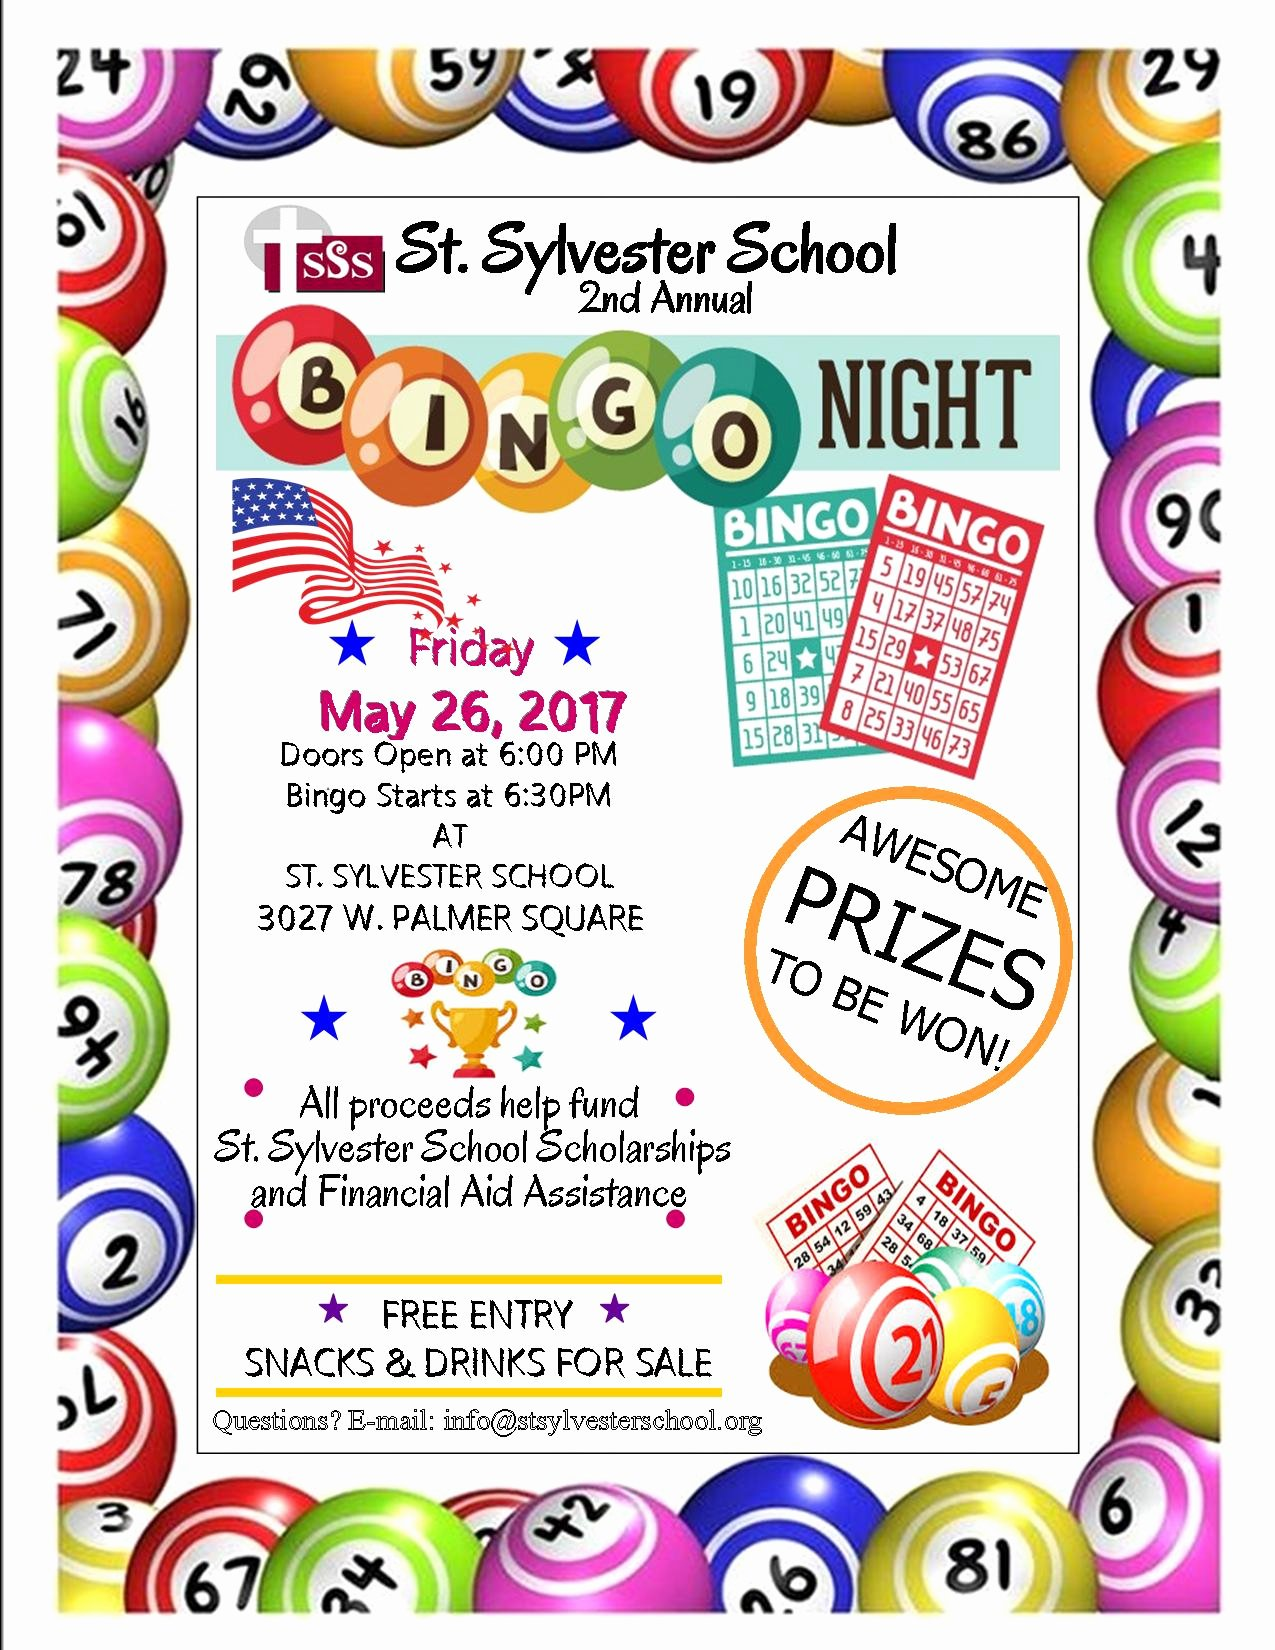 Bingo Flyer Template Free Fresh Bingo Night Flyer March 26 – St Sylvester School